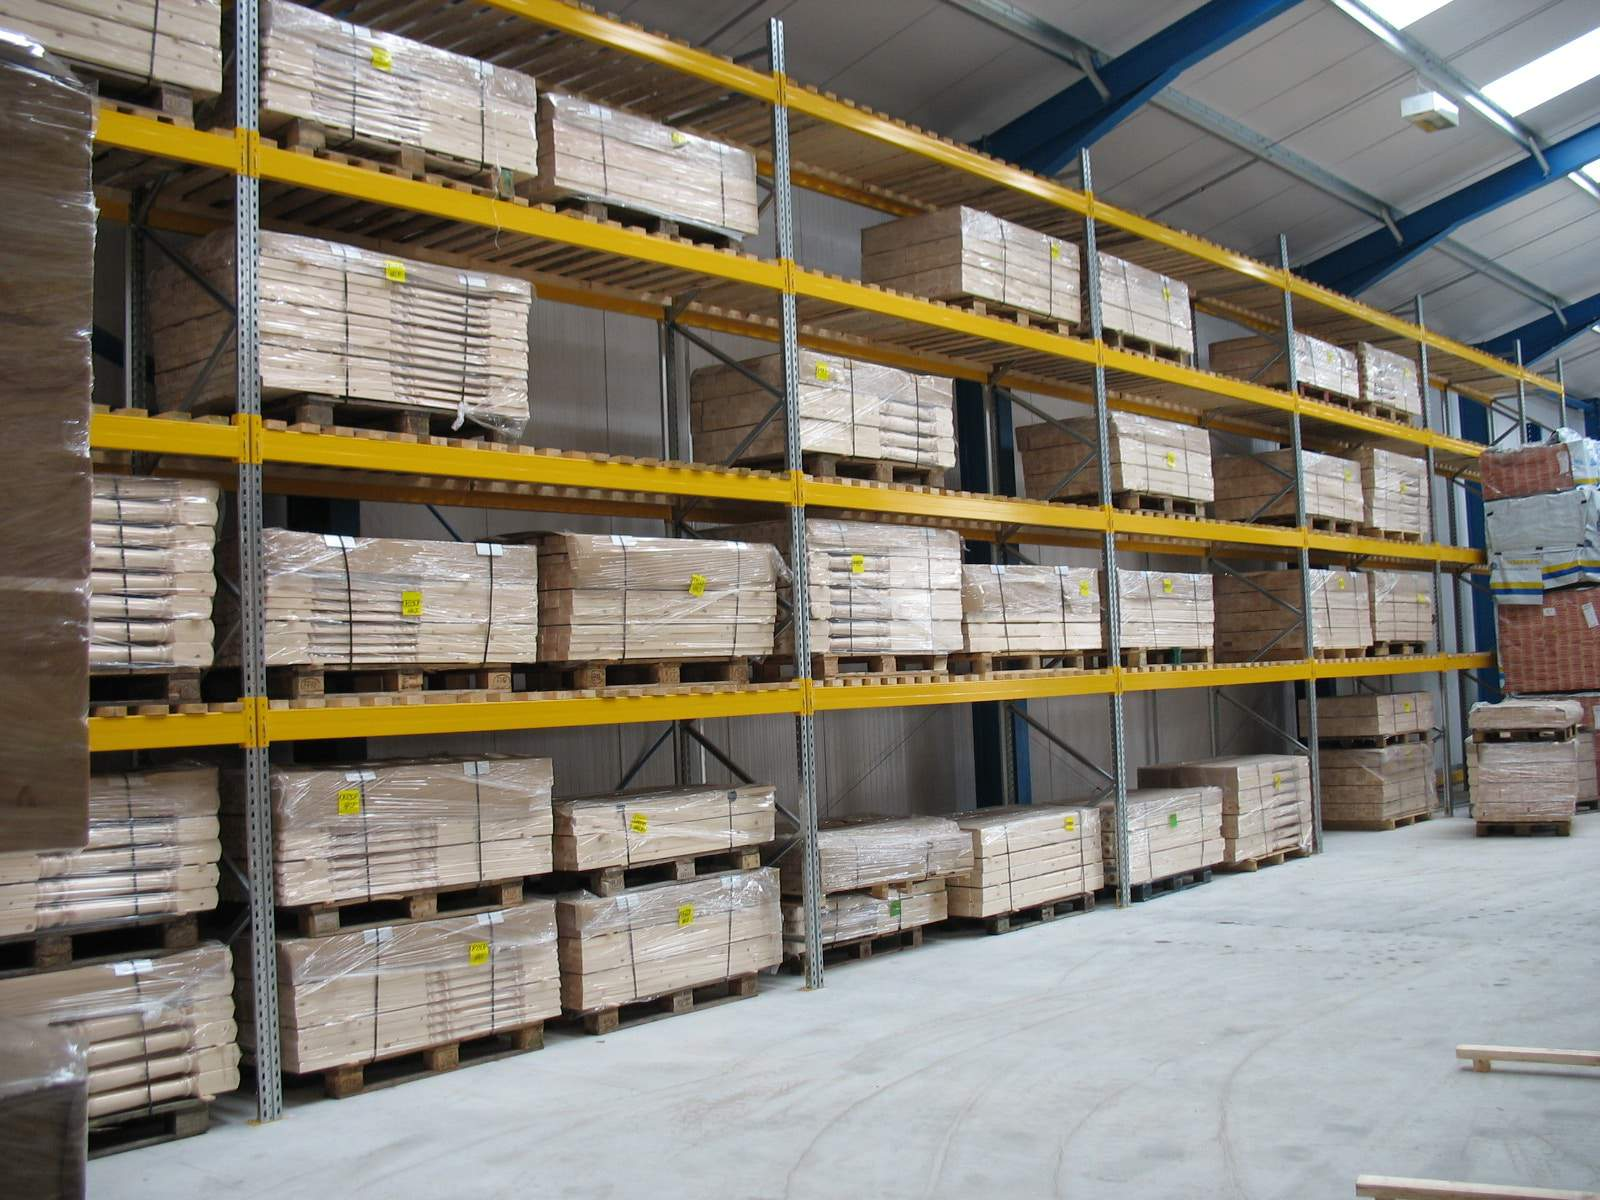 pallet racking for timber products